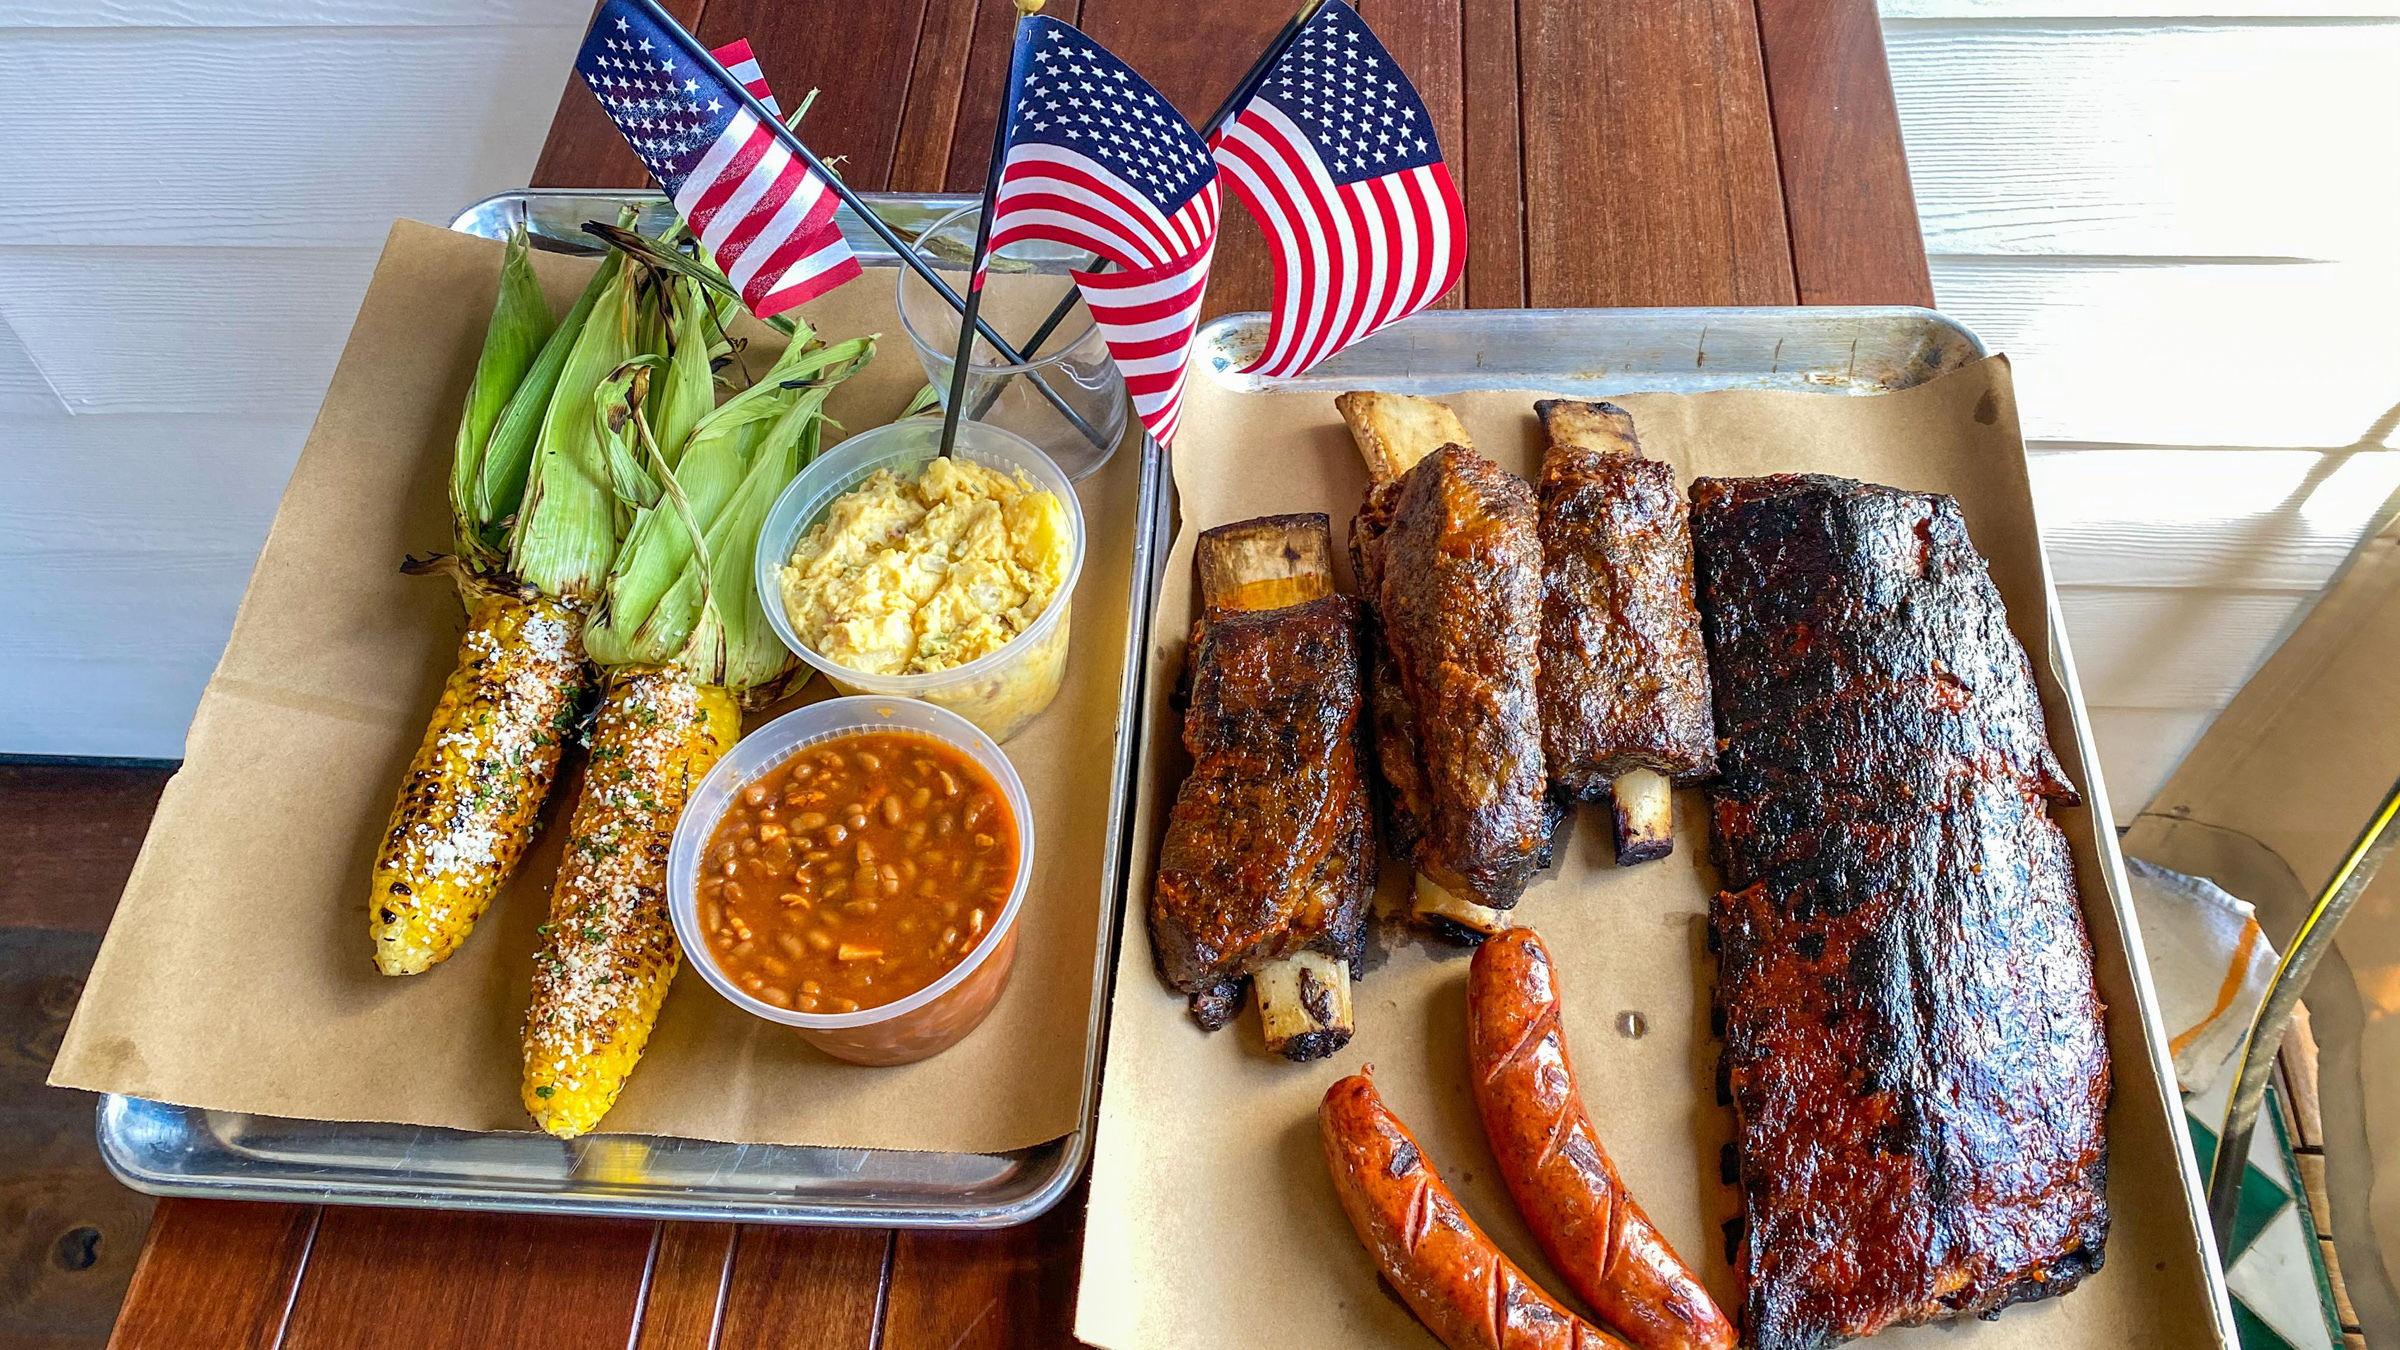 Here's where to order Labor Day food specials and kits around L.A.